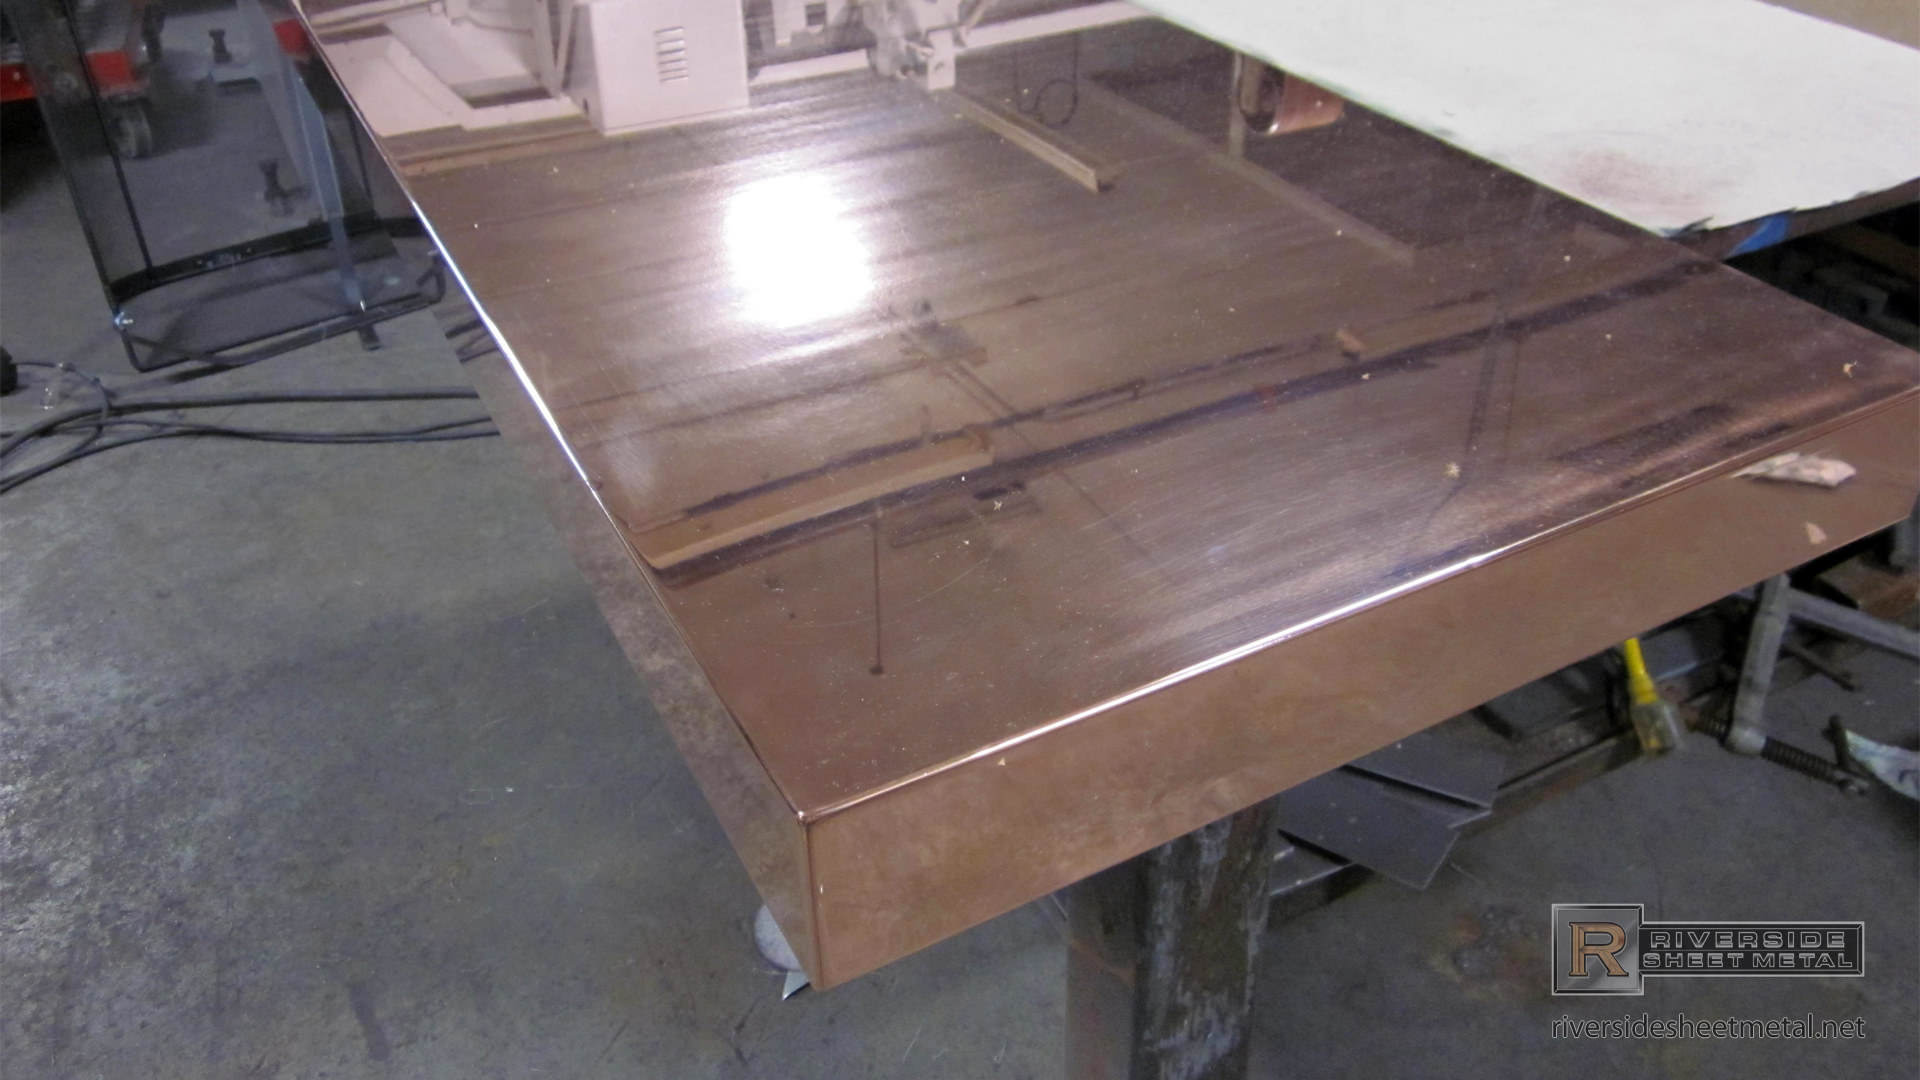 ... Copper Countertop In Fabrication